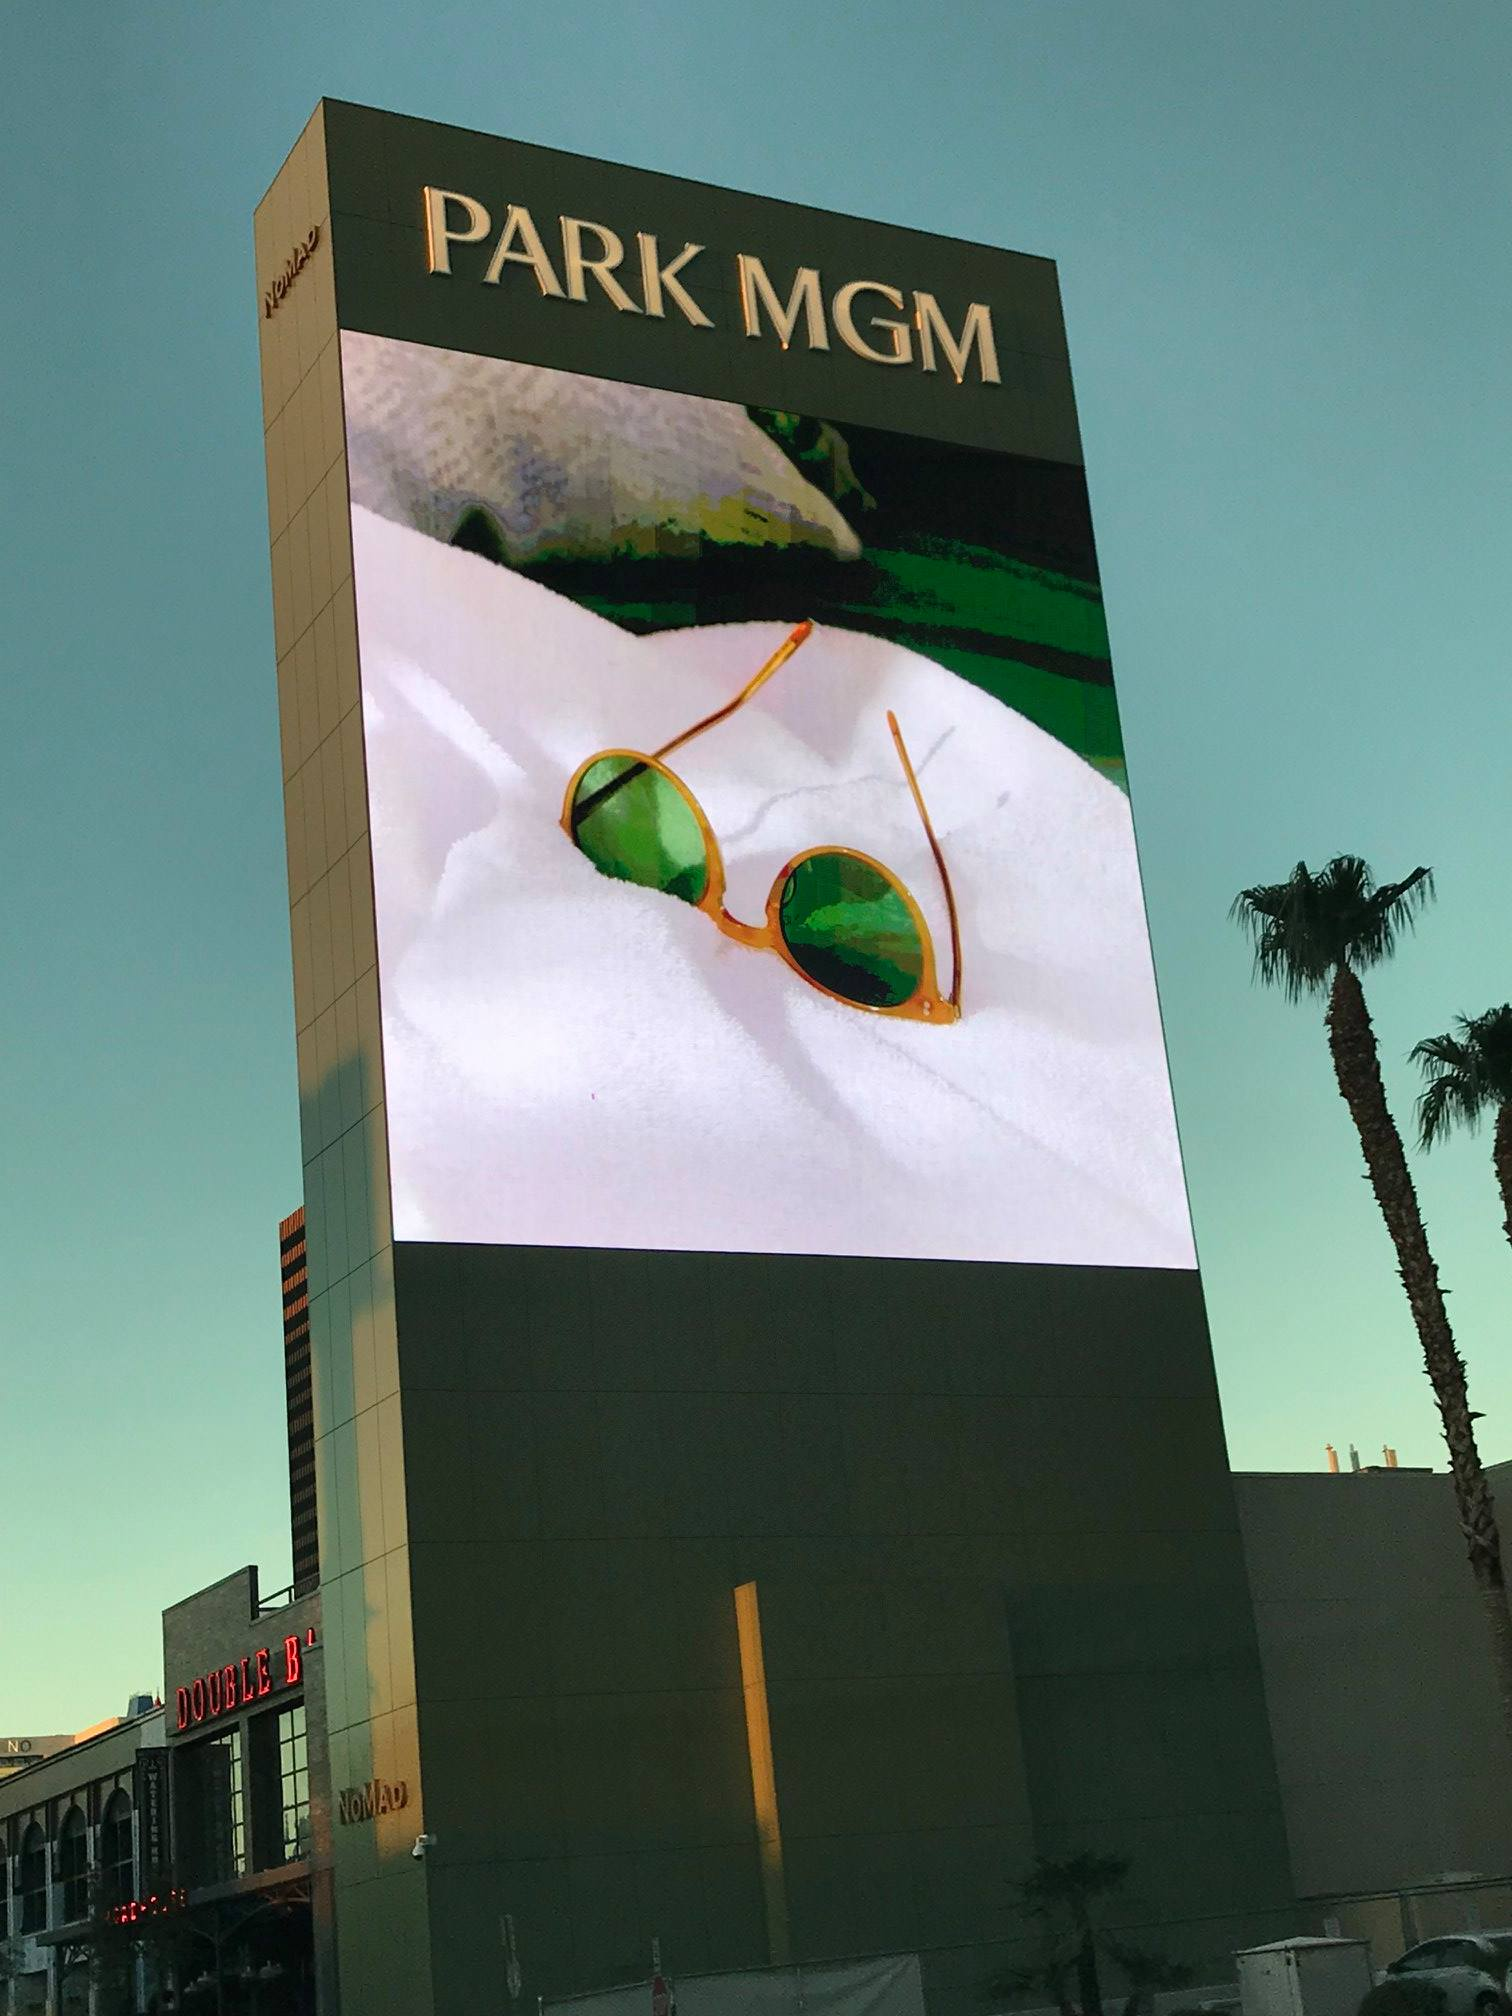 Photograph of Park MGM